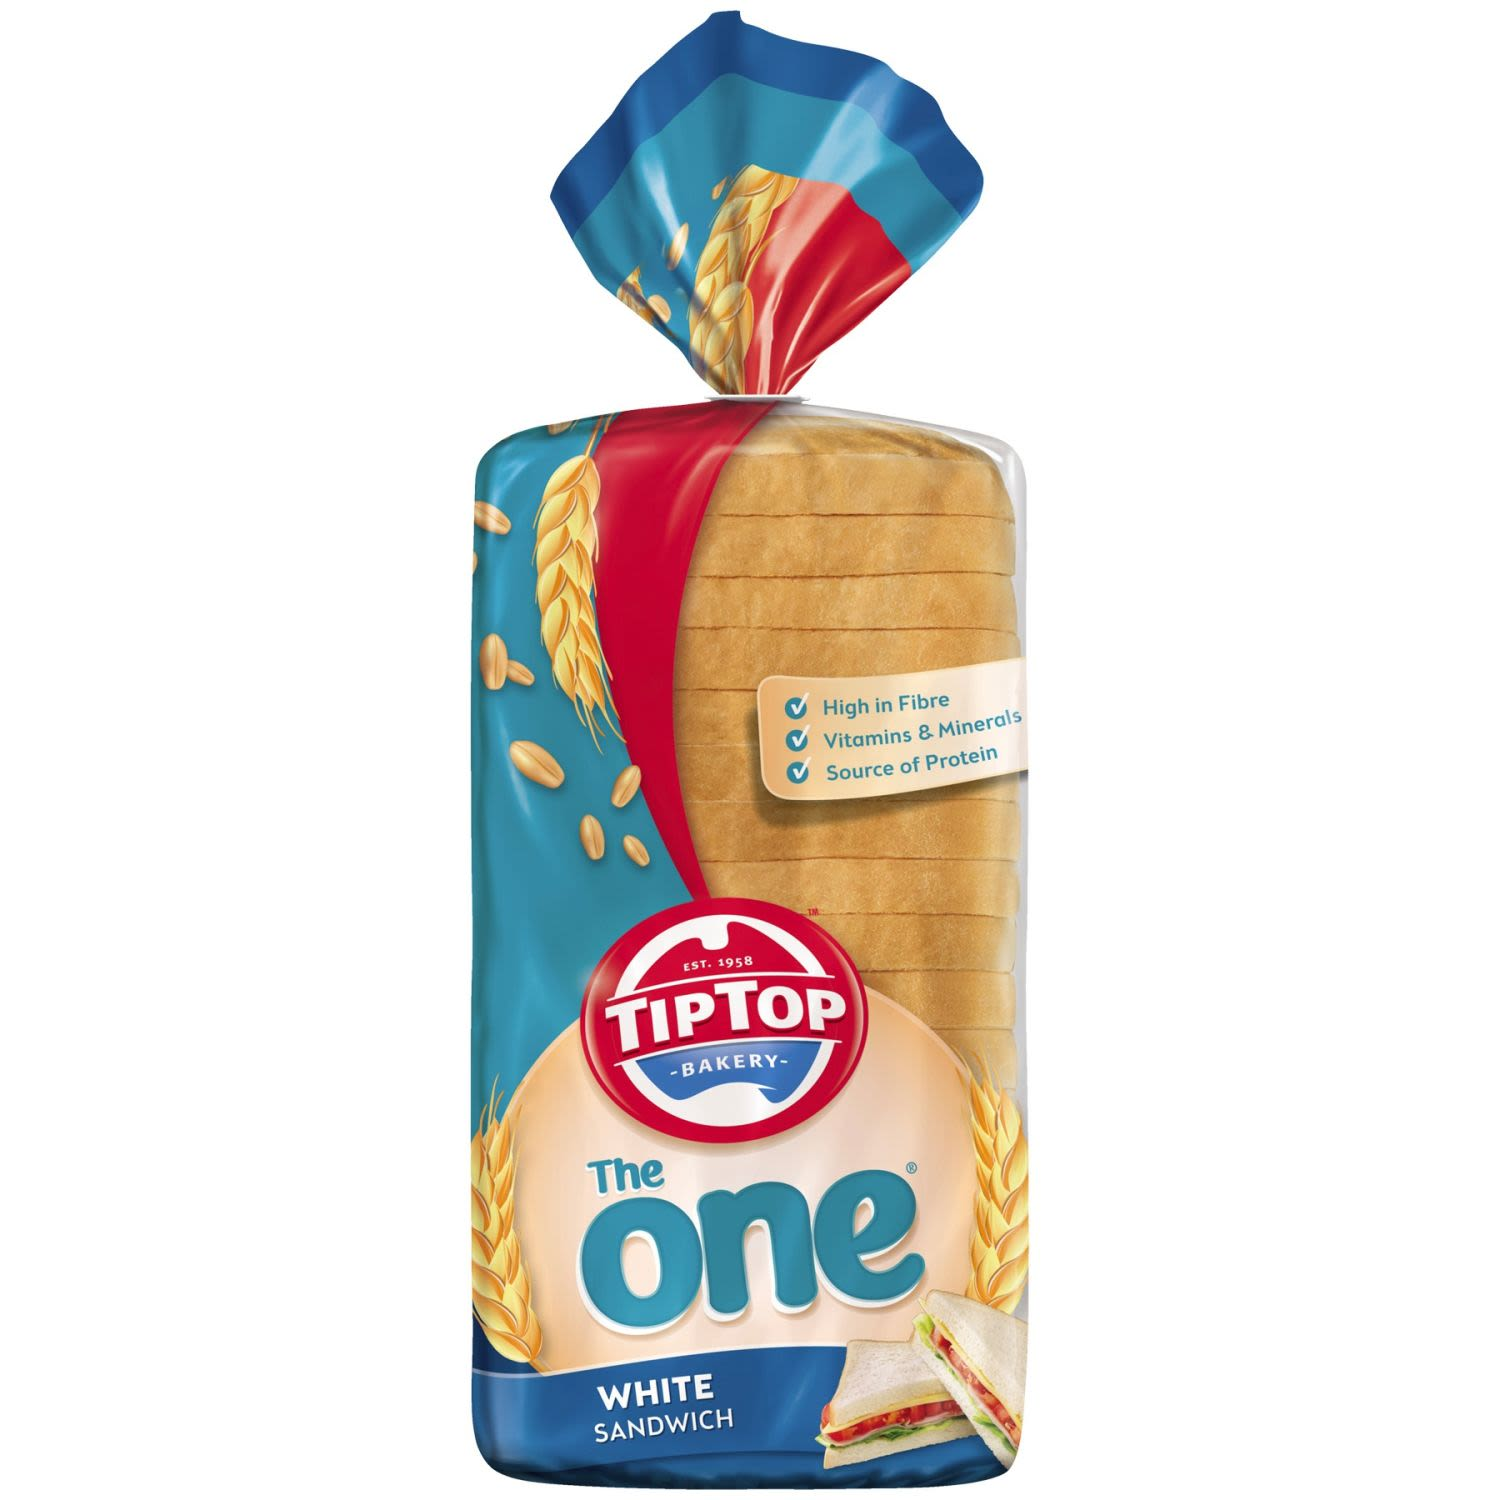 Proudly baking since 1958, Tip Top® is committed to providing quality bakery products for Aussie families. Whether it's our soft loaves of bread perfect for making sandwiches, versatile English muffins for breakfast and snacks, or hot dog rolls to feed the masses during footy season, Tip Top@ has you covered It's no wonder the family says...